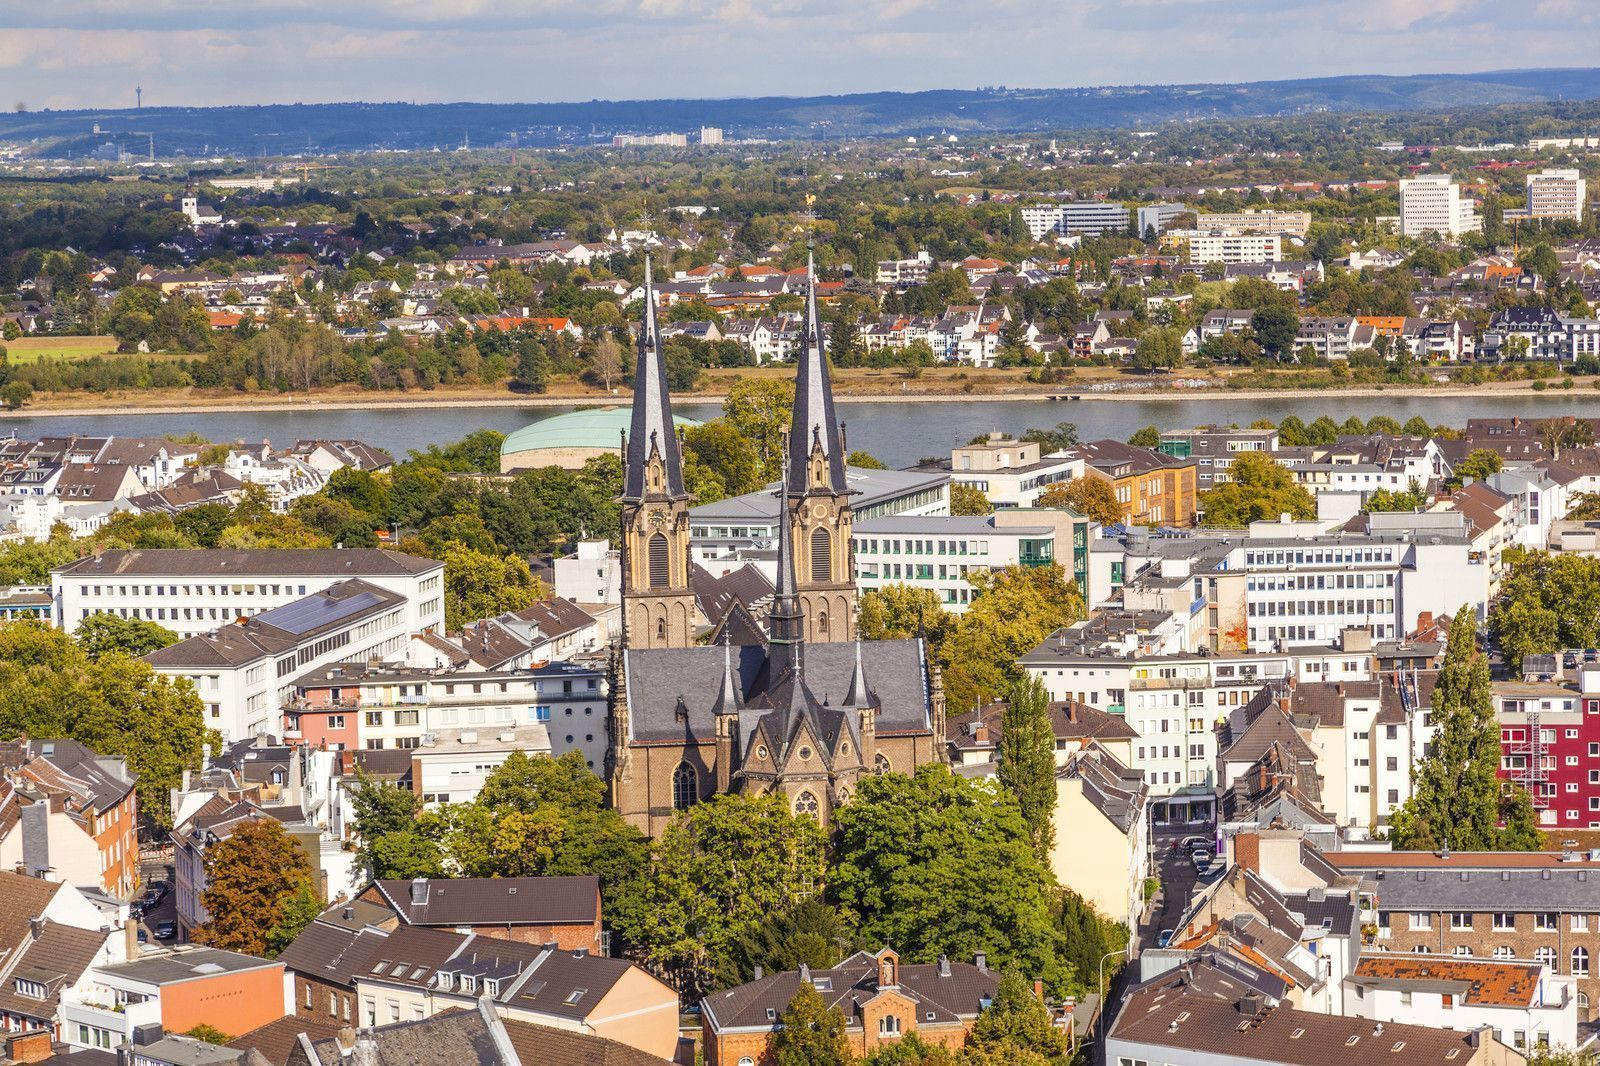 Bonn - Panoramic by the Rhine